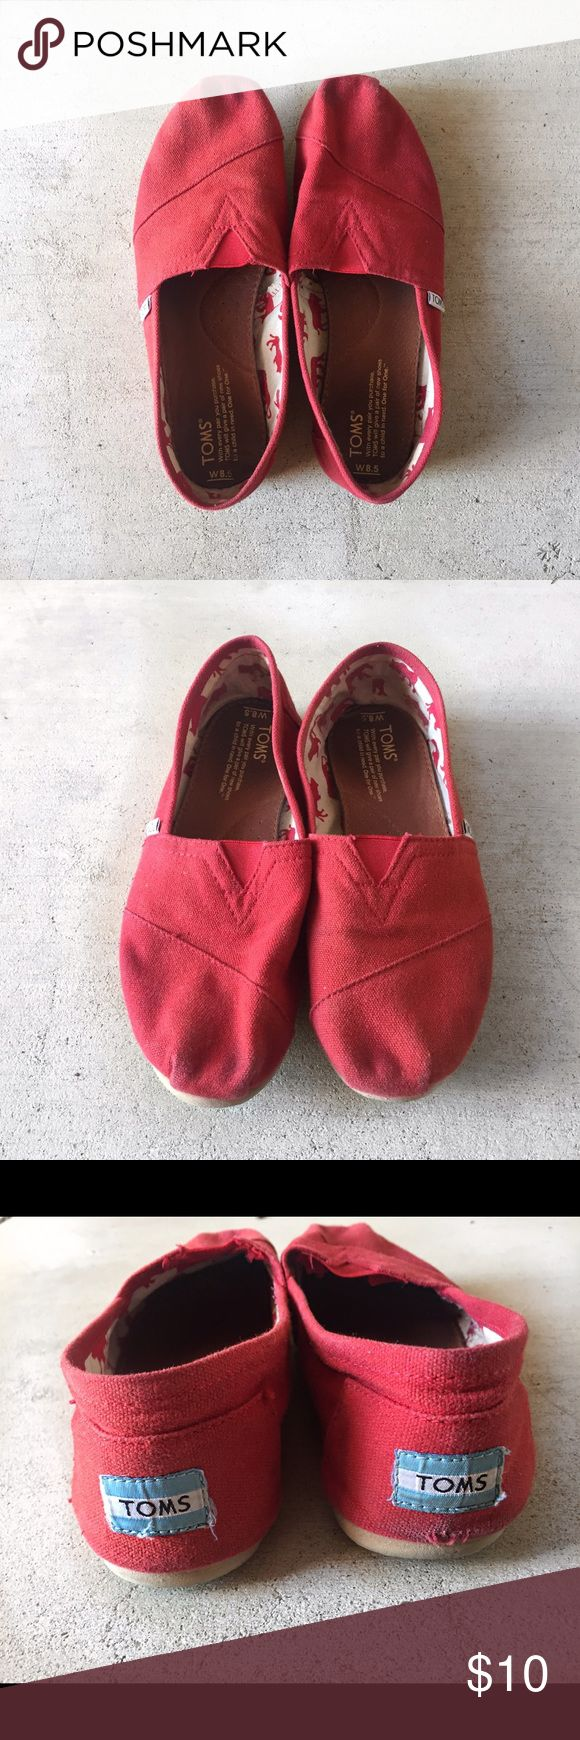 Toms shoes 8.5! Red color. worn a few times, scuffed on the right heel. and a little faded in the tie area. other than that in great condition! TOMS Shoes